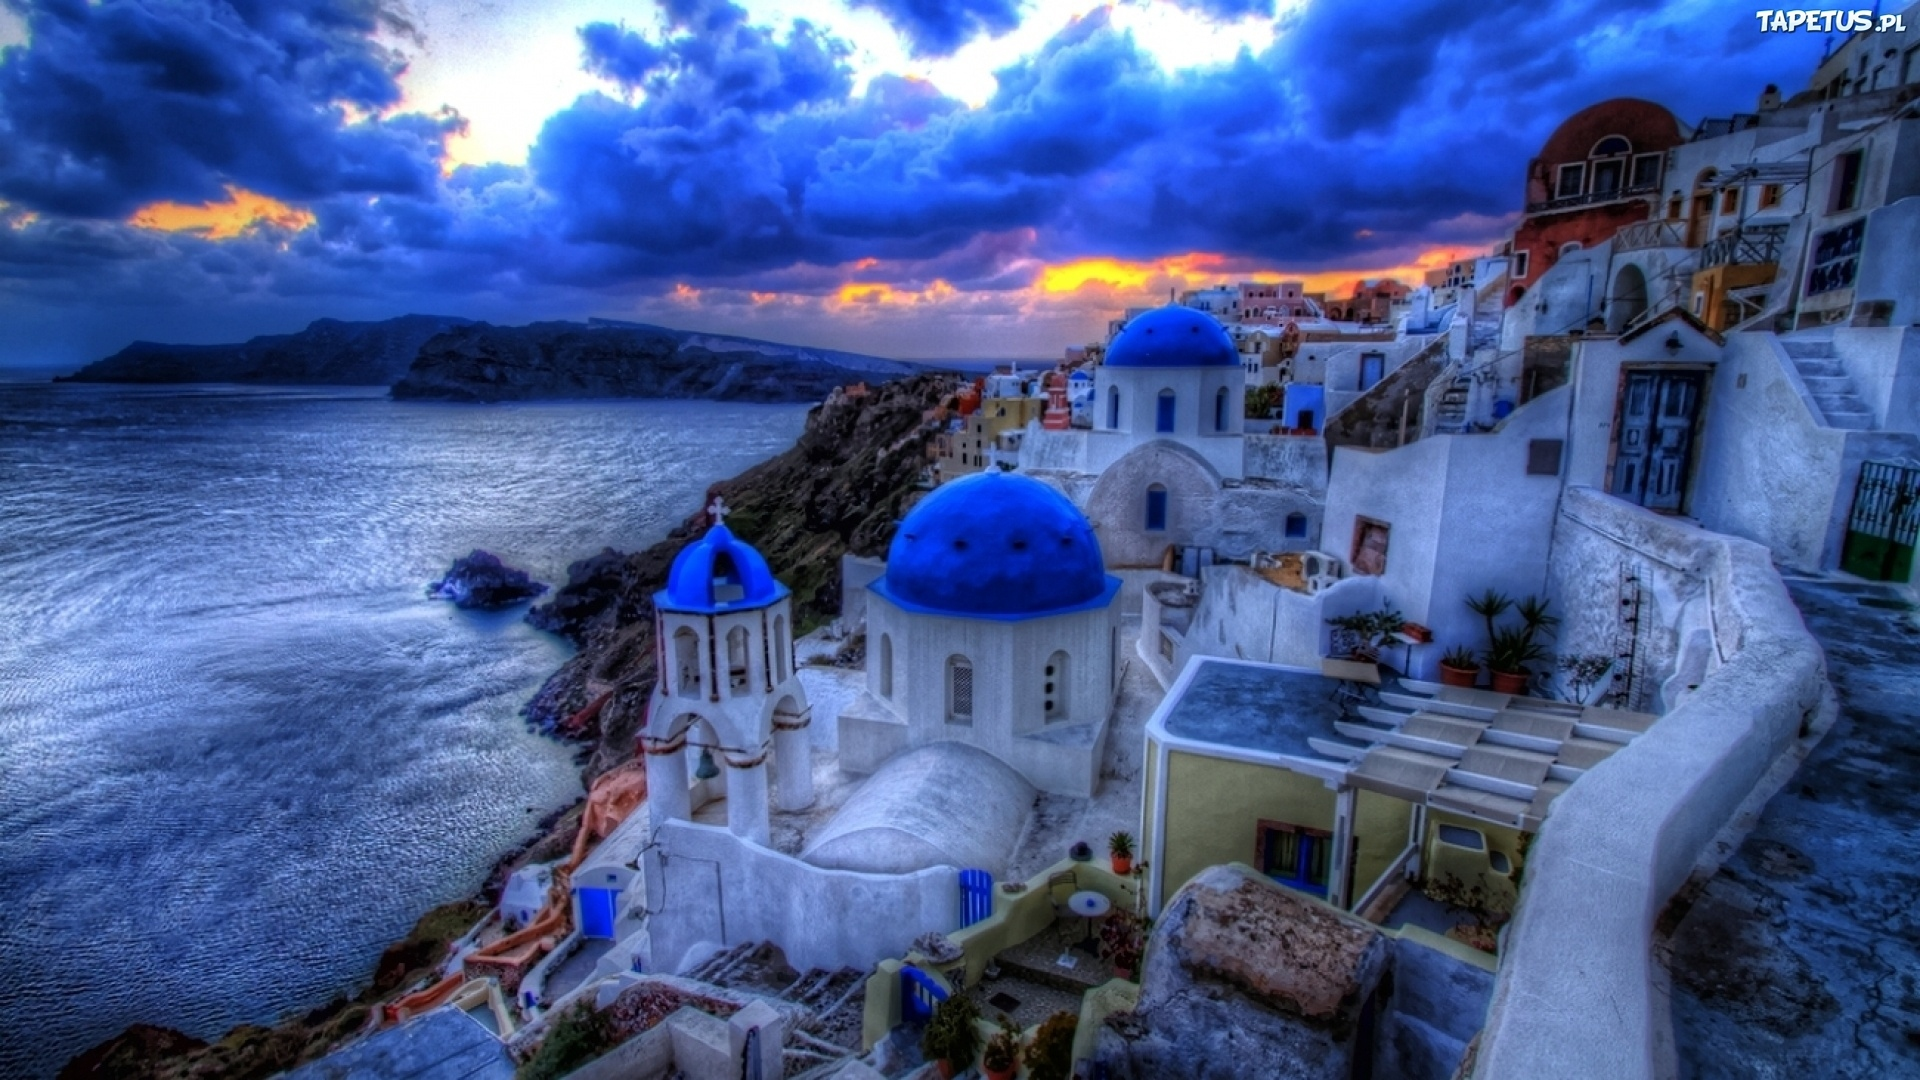 Mykonos Greece In High Resolution Hd Desktop Wallpaper: Santorini, Grecja